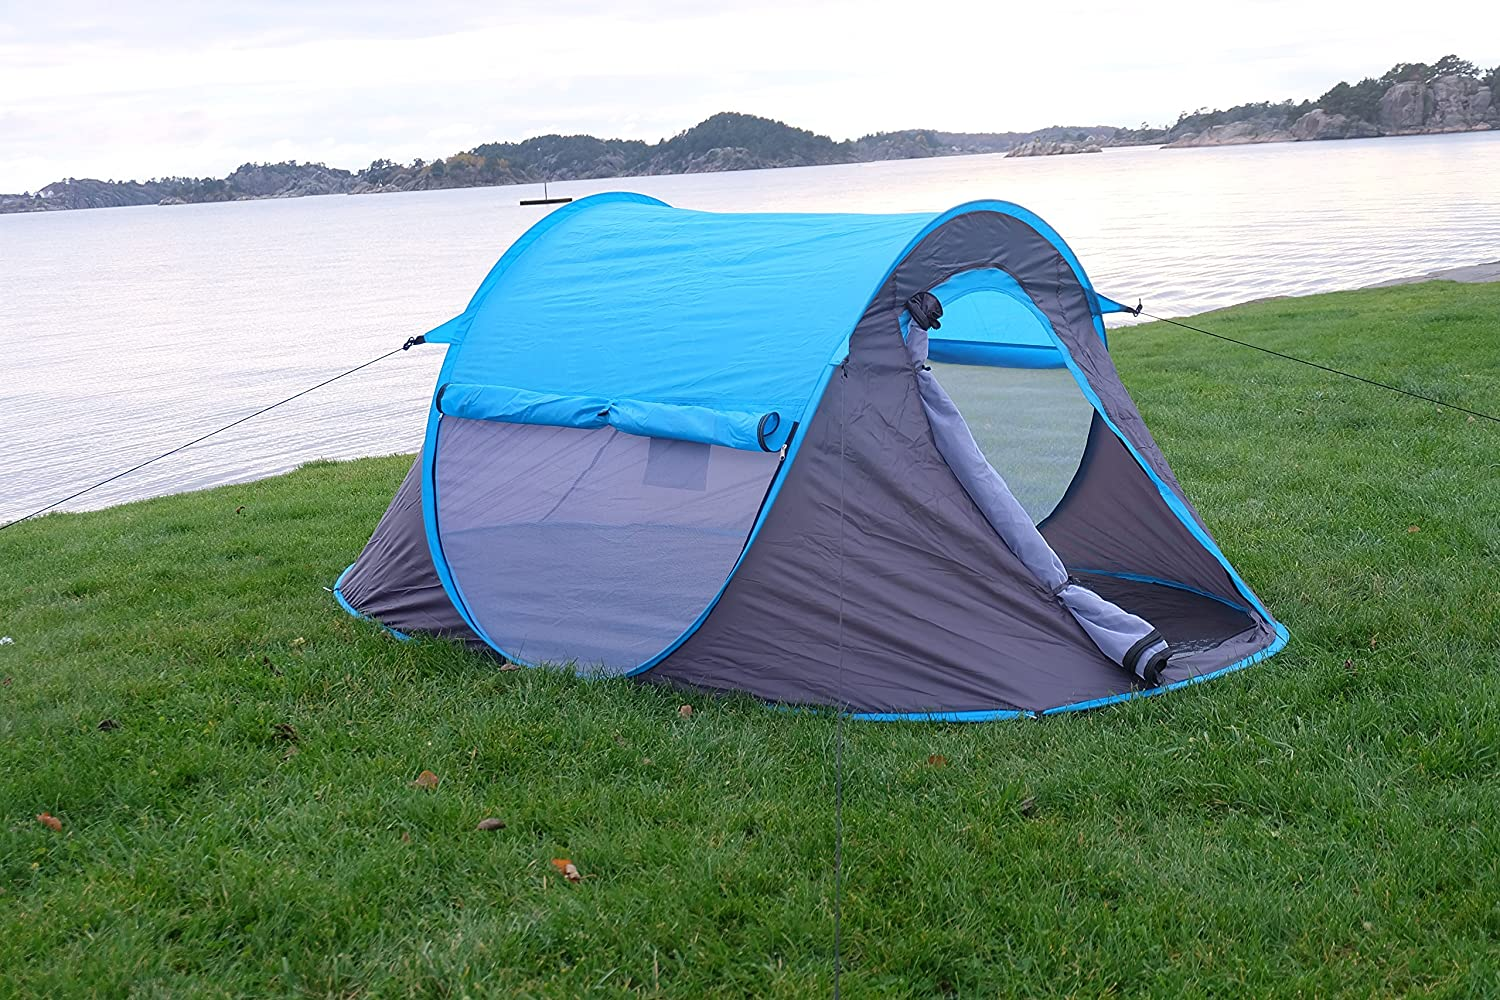 Amazon.com  2 person Pop Up Tent - Opens Instantly in Seconds and is Perfect for Backpacking C&ing or any Other Outdoor Activity. & Amazon.com : 2 person Pop Up Tent - Opens Instantly in Seconds and ...